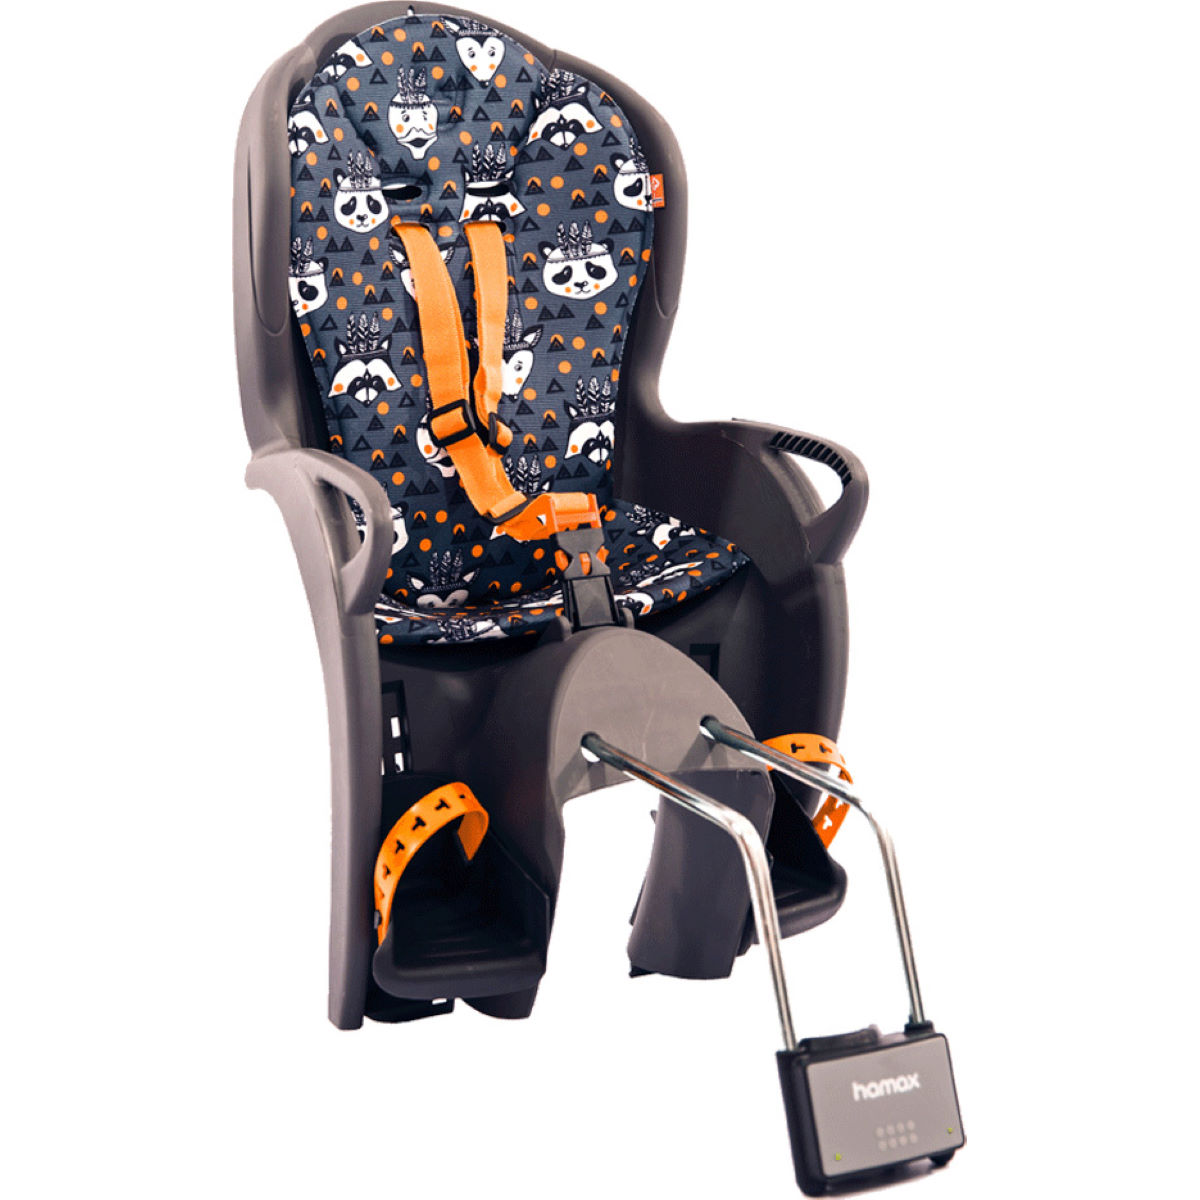 Hamax Hamax Kiss Rear Mounted Childseat - Sillas infantiles